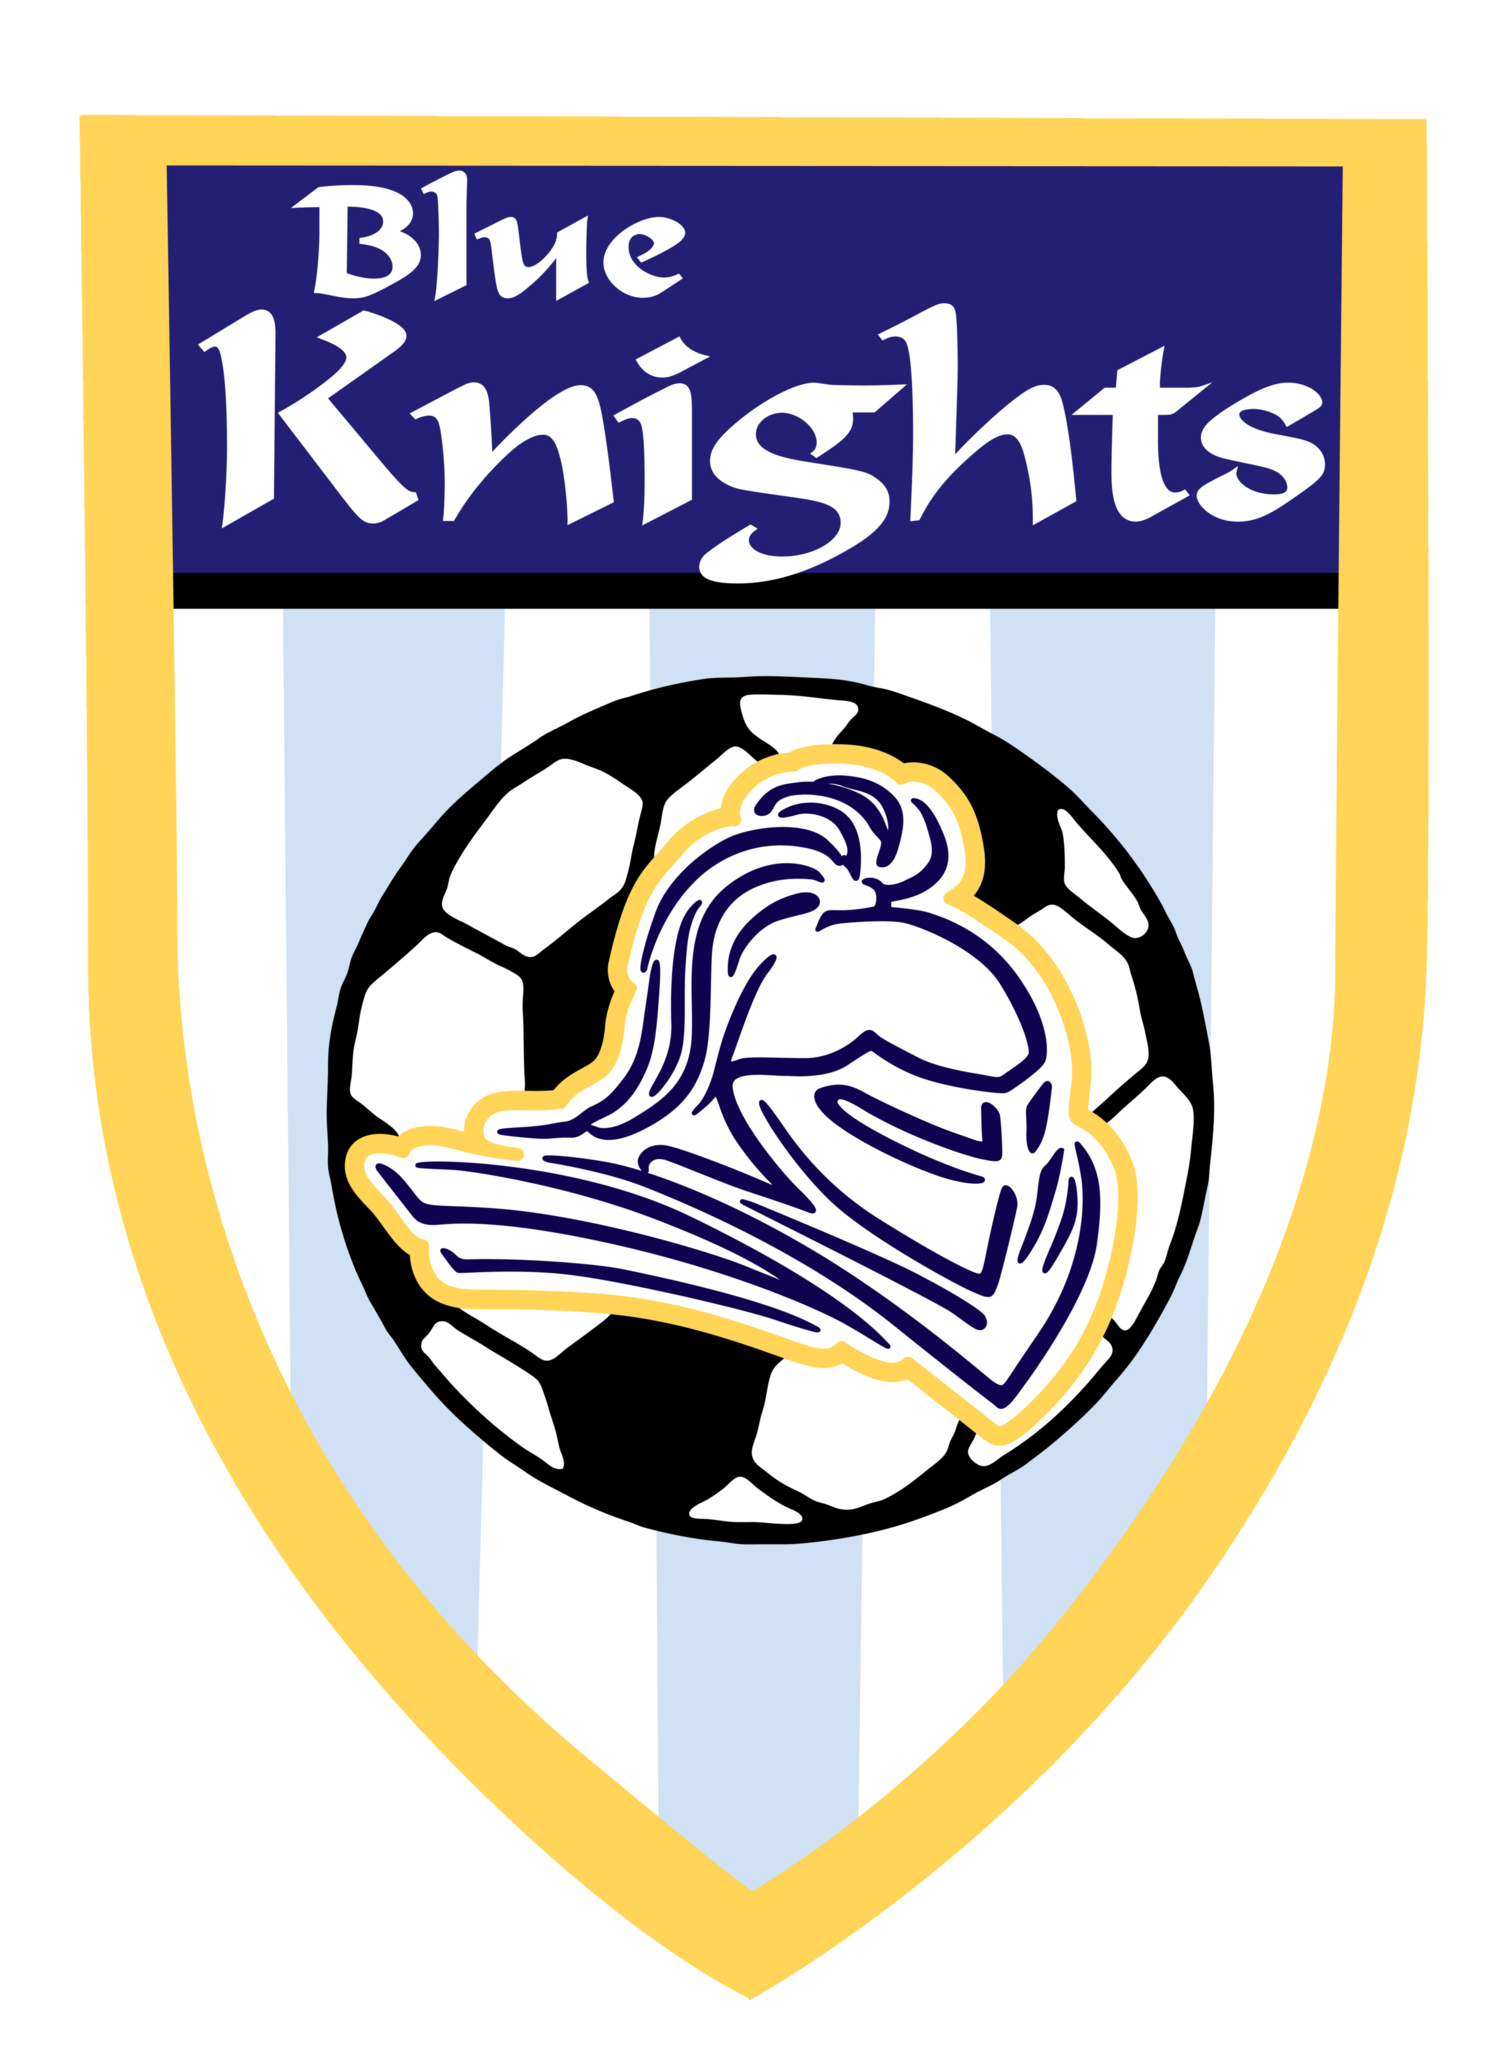 Blue Knights Soccer Club